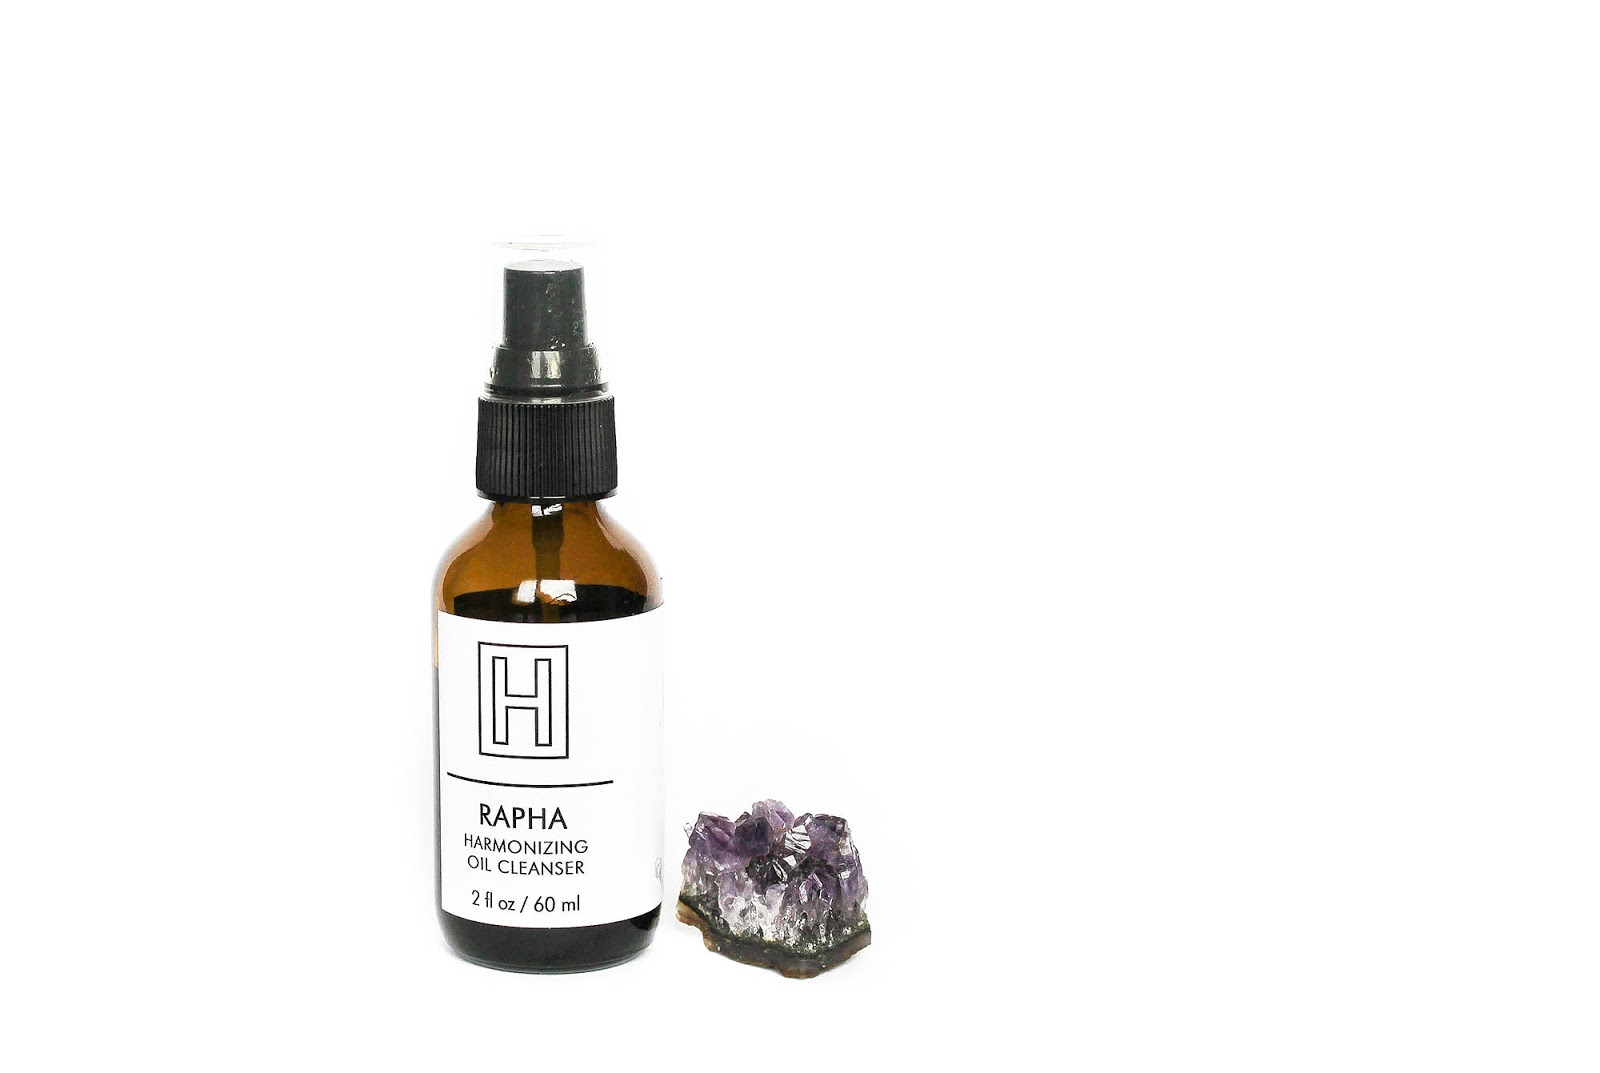 H is for Love Rapha Harmonizing Oil Cleanser. So Natural Beauty. Evening Skincare Routine, Natural and Organic Products.